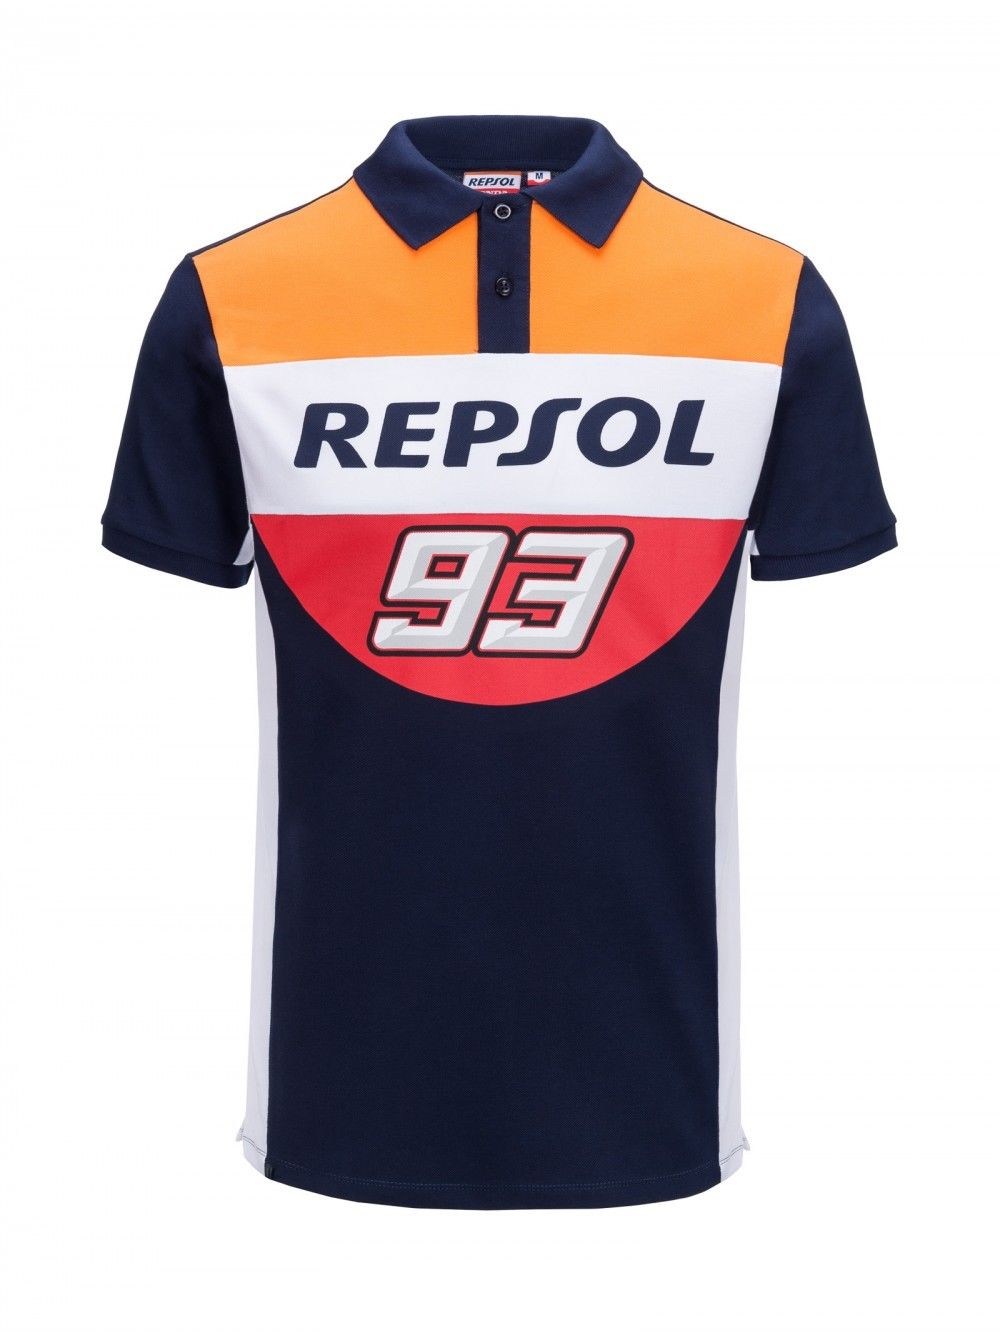 2018 Moto gp Marquez 93 Repsol GAS Polo Shirt Motorcycle ATV Sports Large Ant Racing Polo